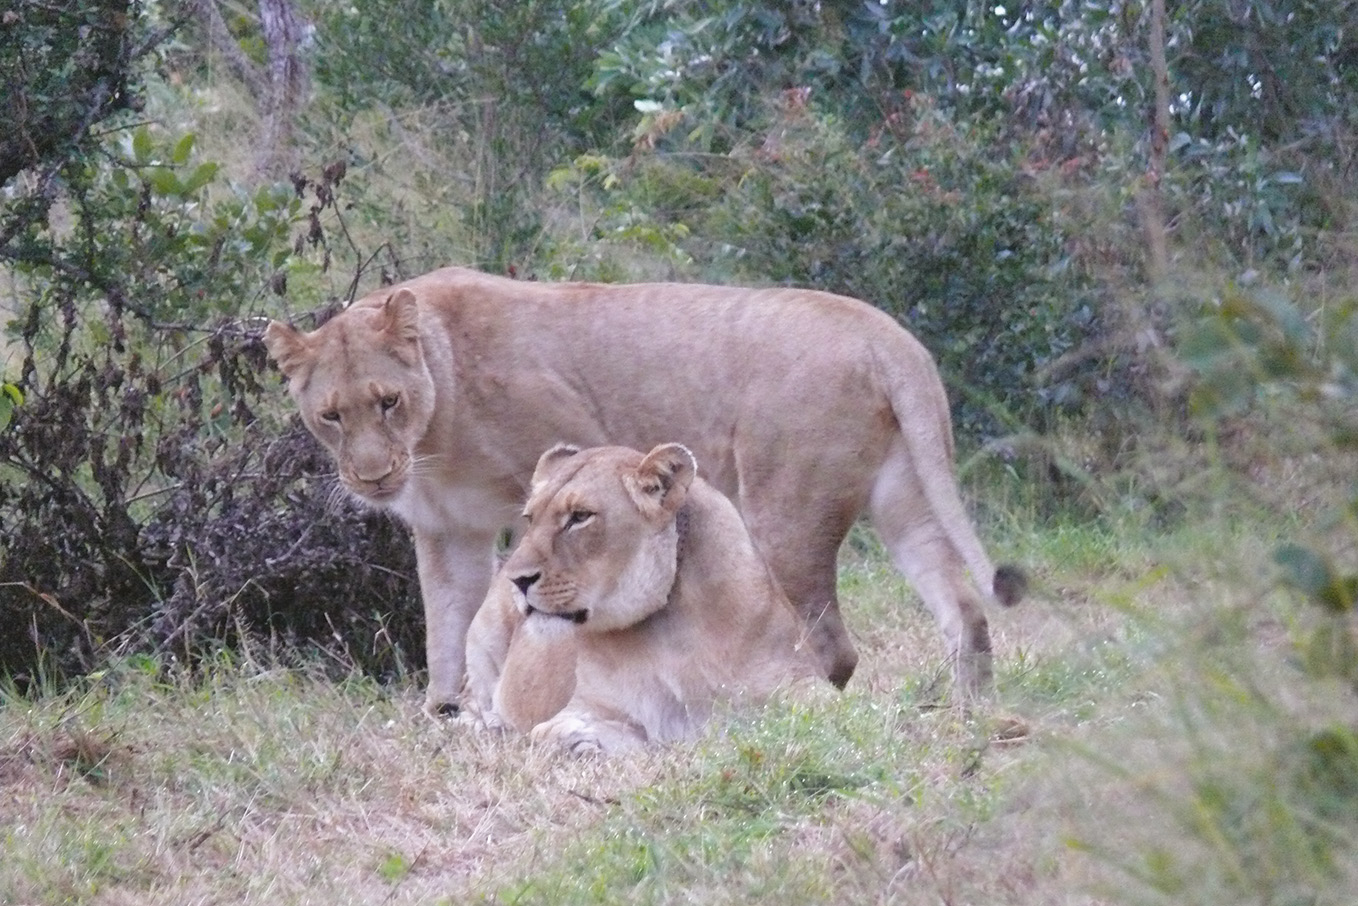 Rewilding White Lions: Conservation through the Eyes of